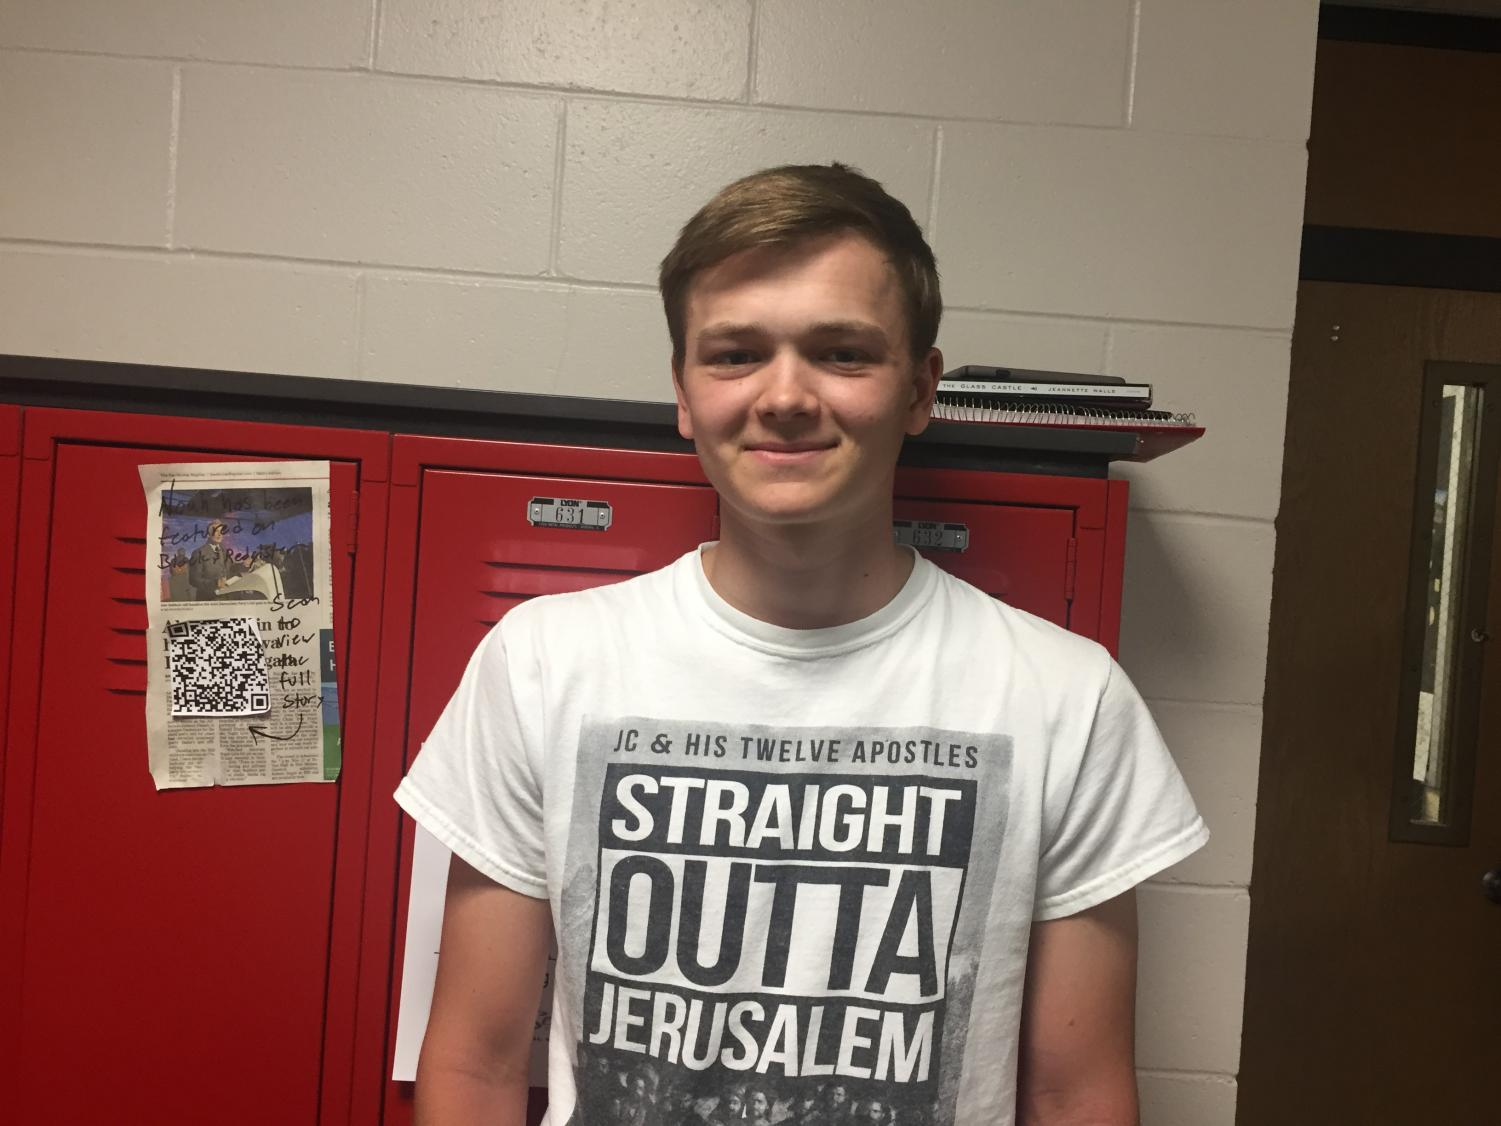 Adam O'Connor smiling for the camera after being told he was selected as March Student of the Month for Boys Golf.